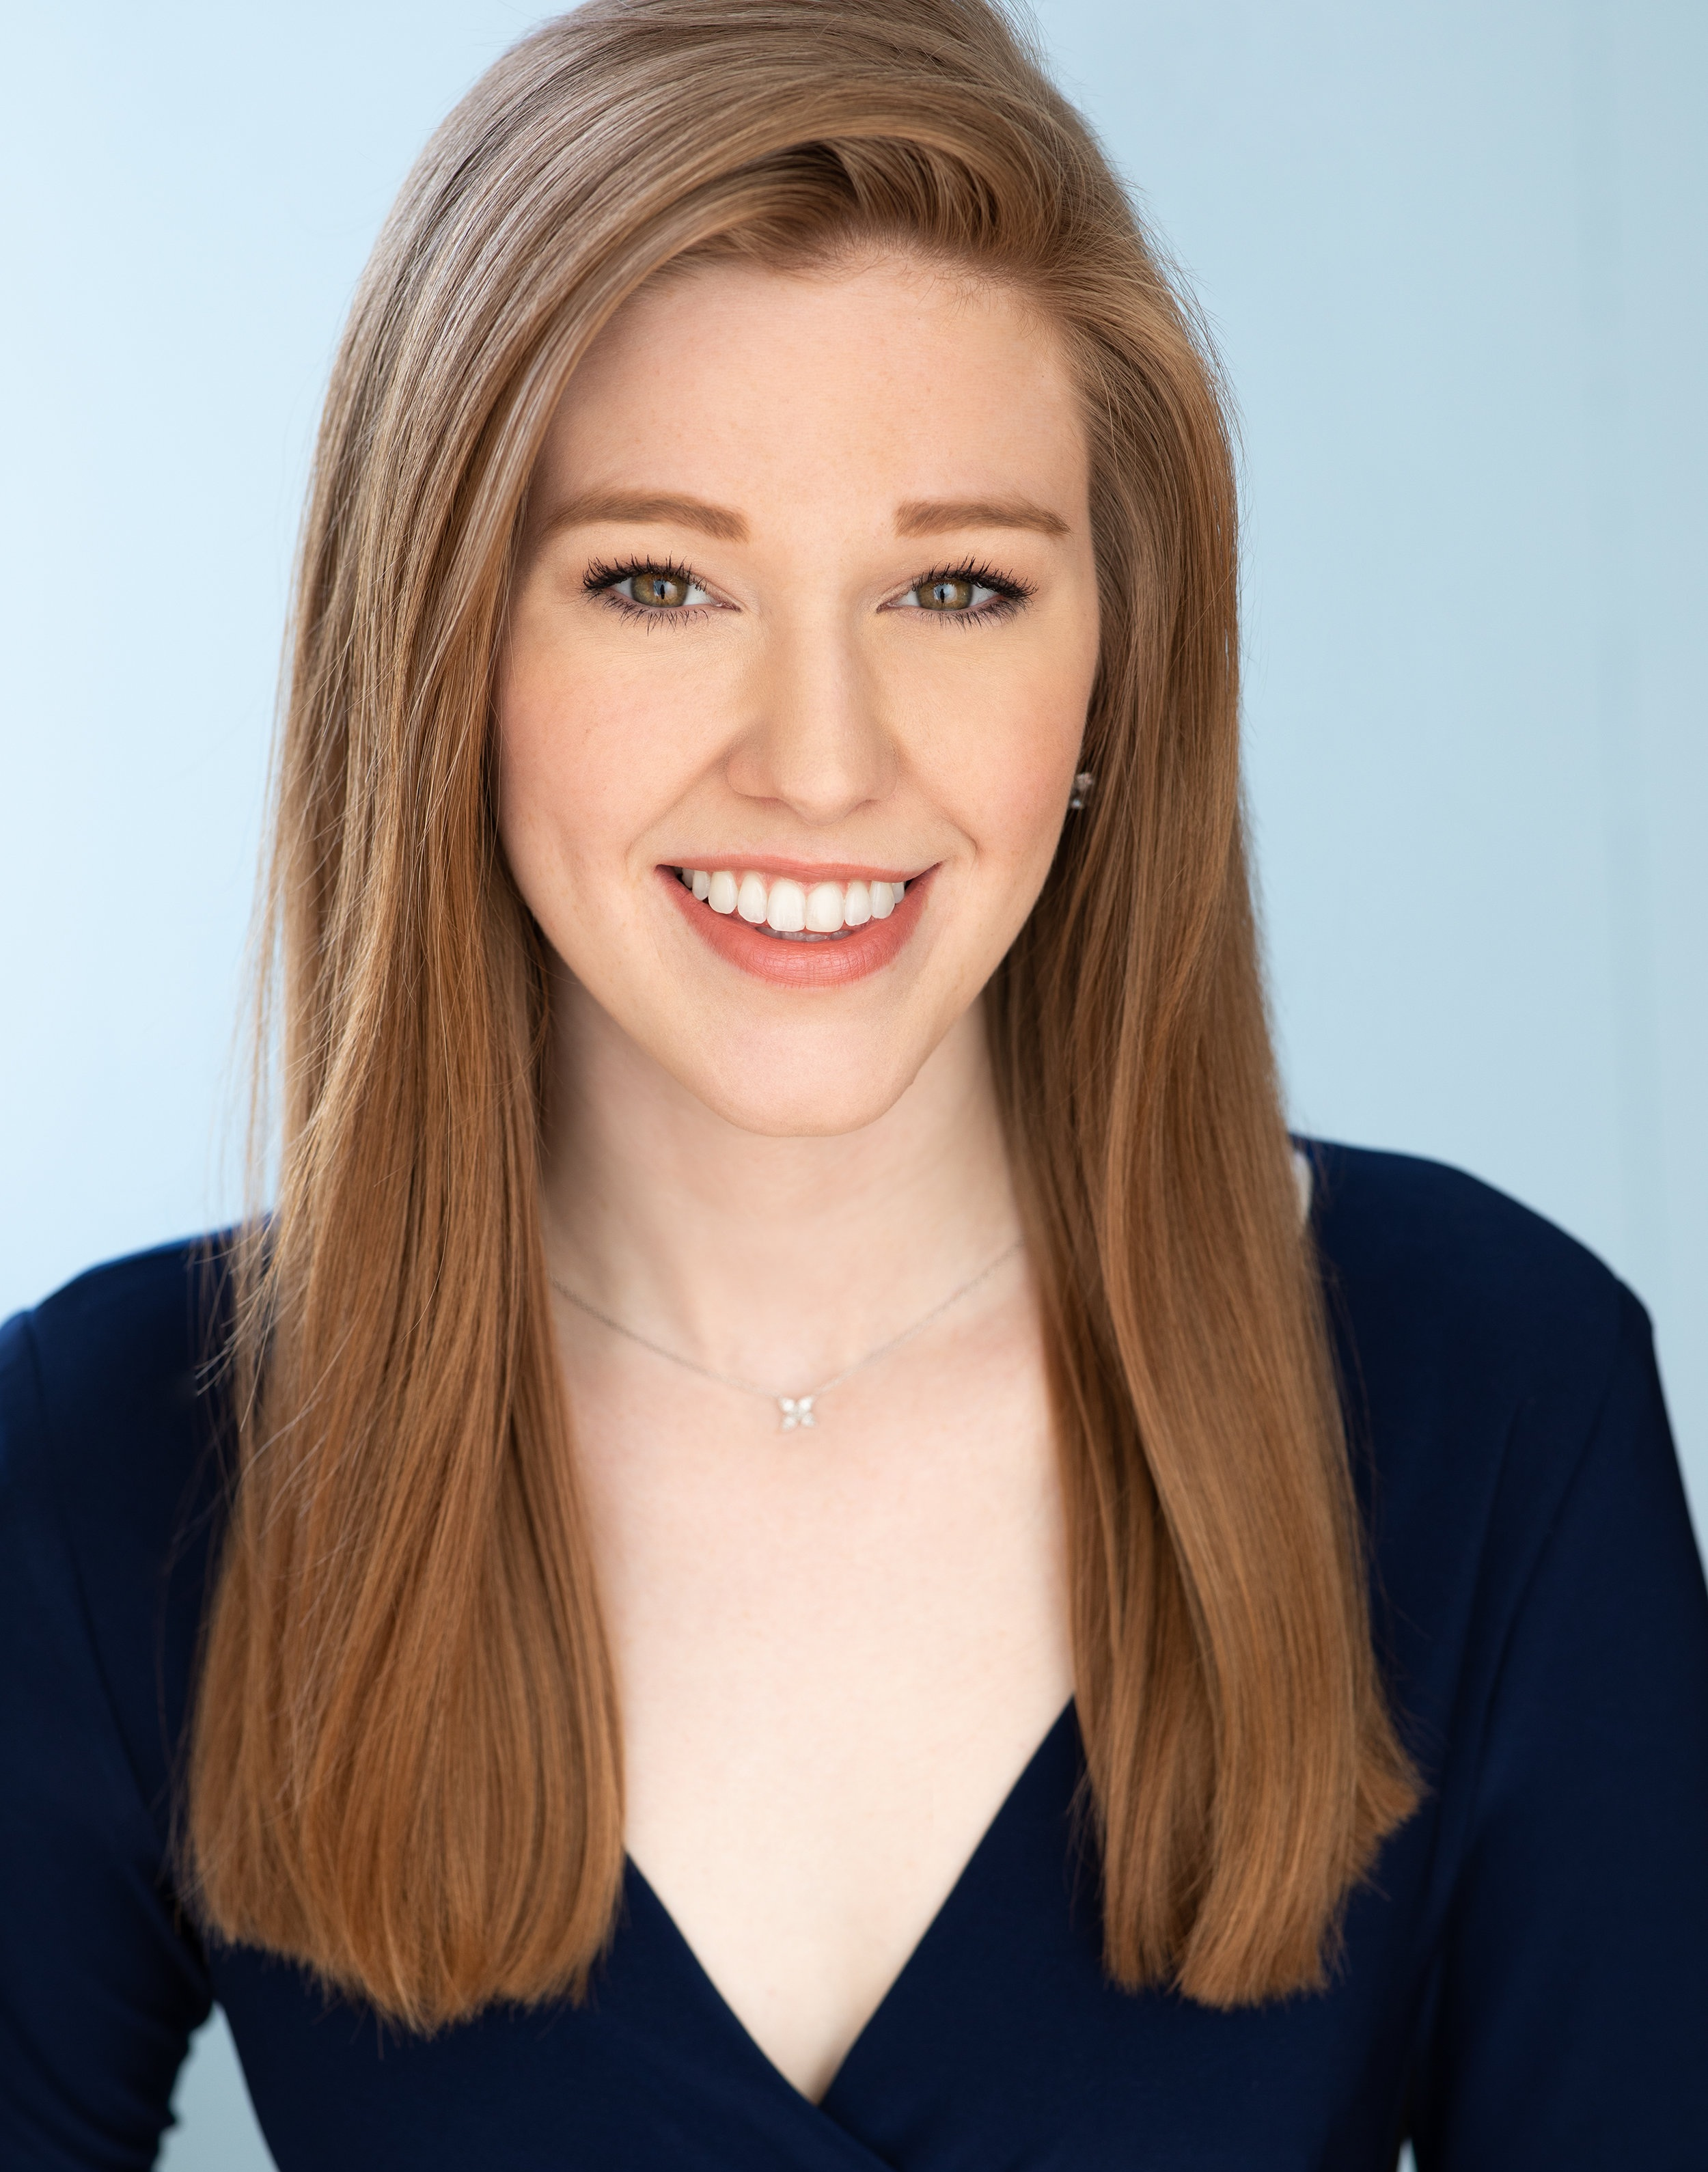 NEW HEADSHOTS! - You wanna take a peek at my new headshots? Check out the link to my gallery page here:https://www.chelseygrant.com/headshot-1Be sure to take a peek at the talented Dani Werner Photography on her website linked here:http://www.daniphoto.com/